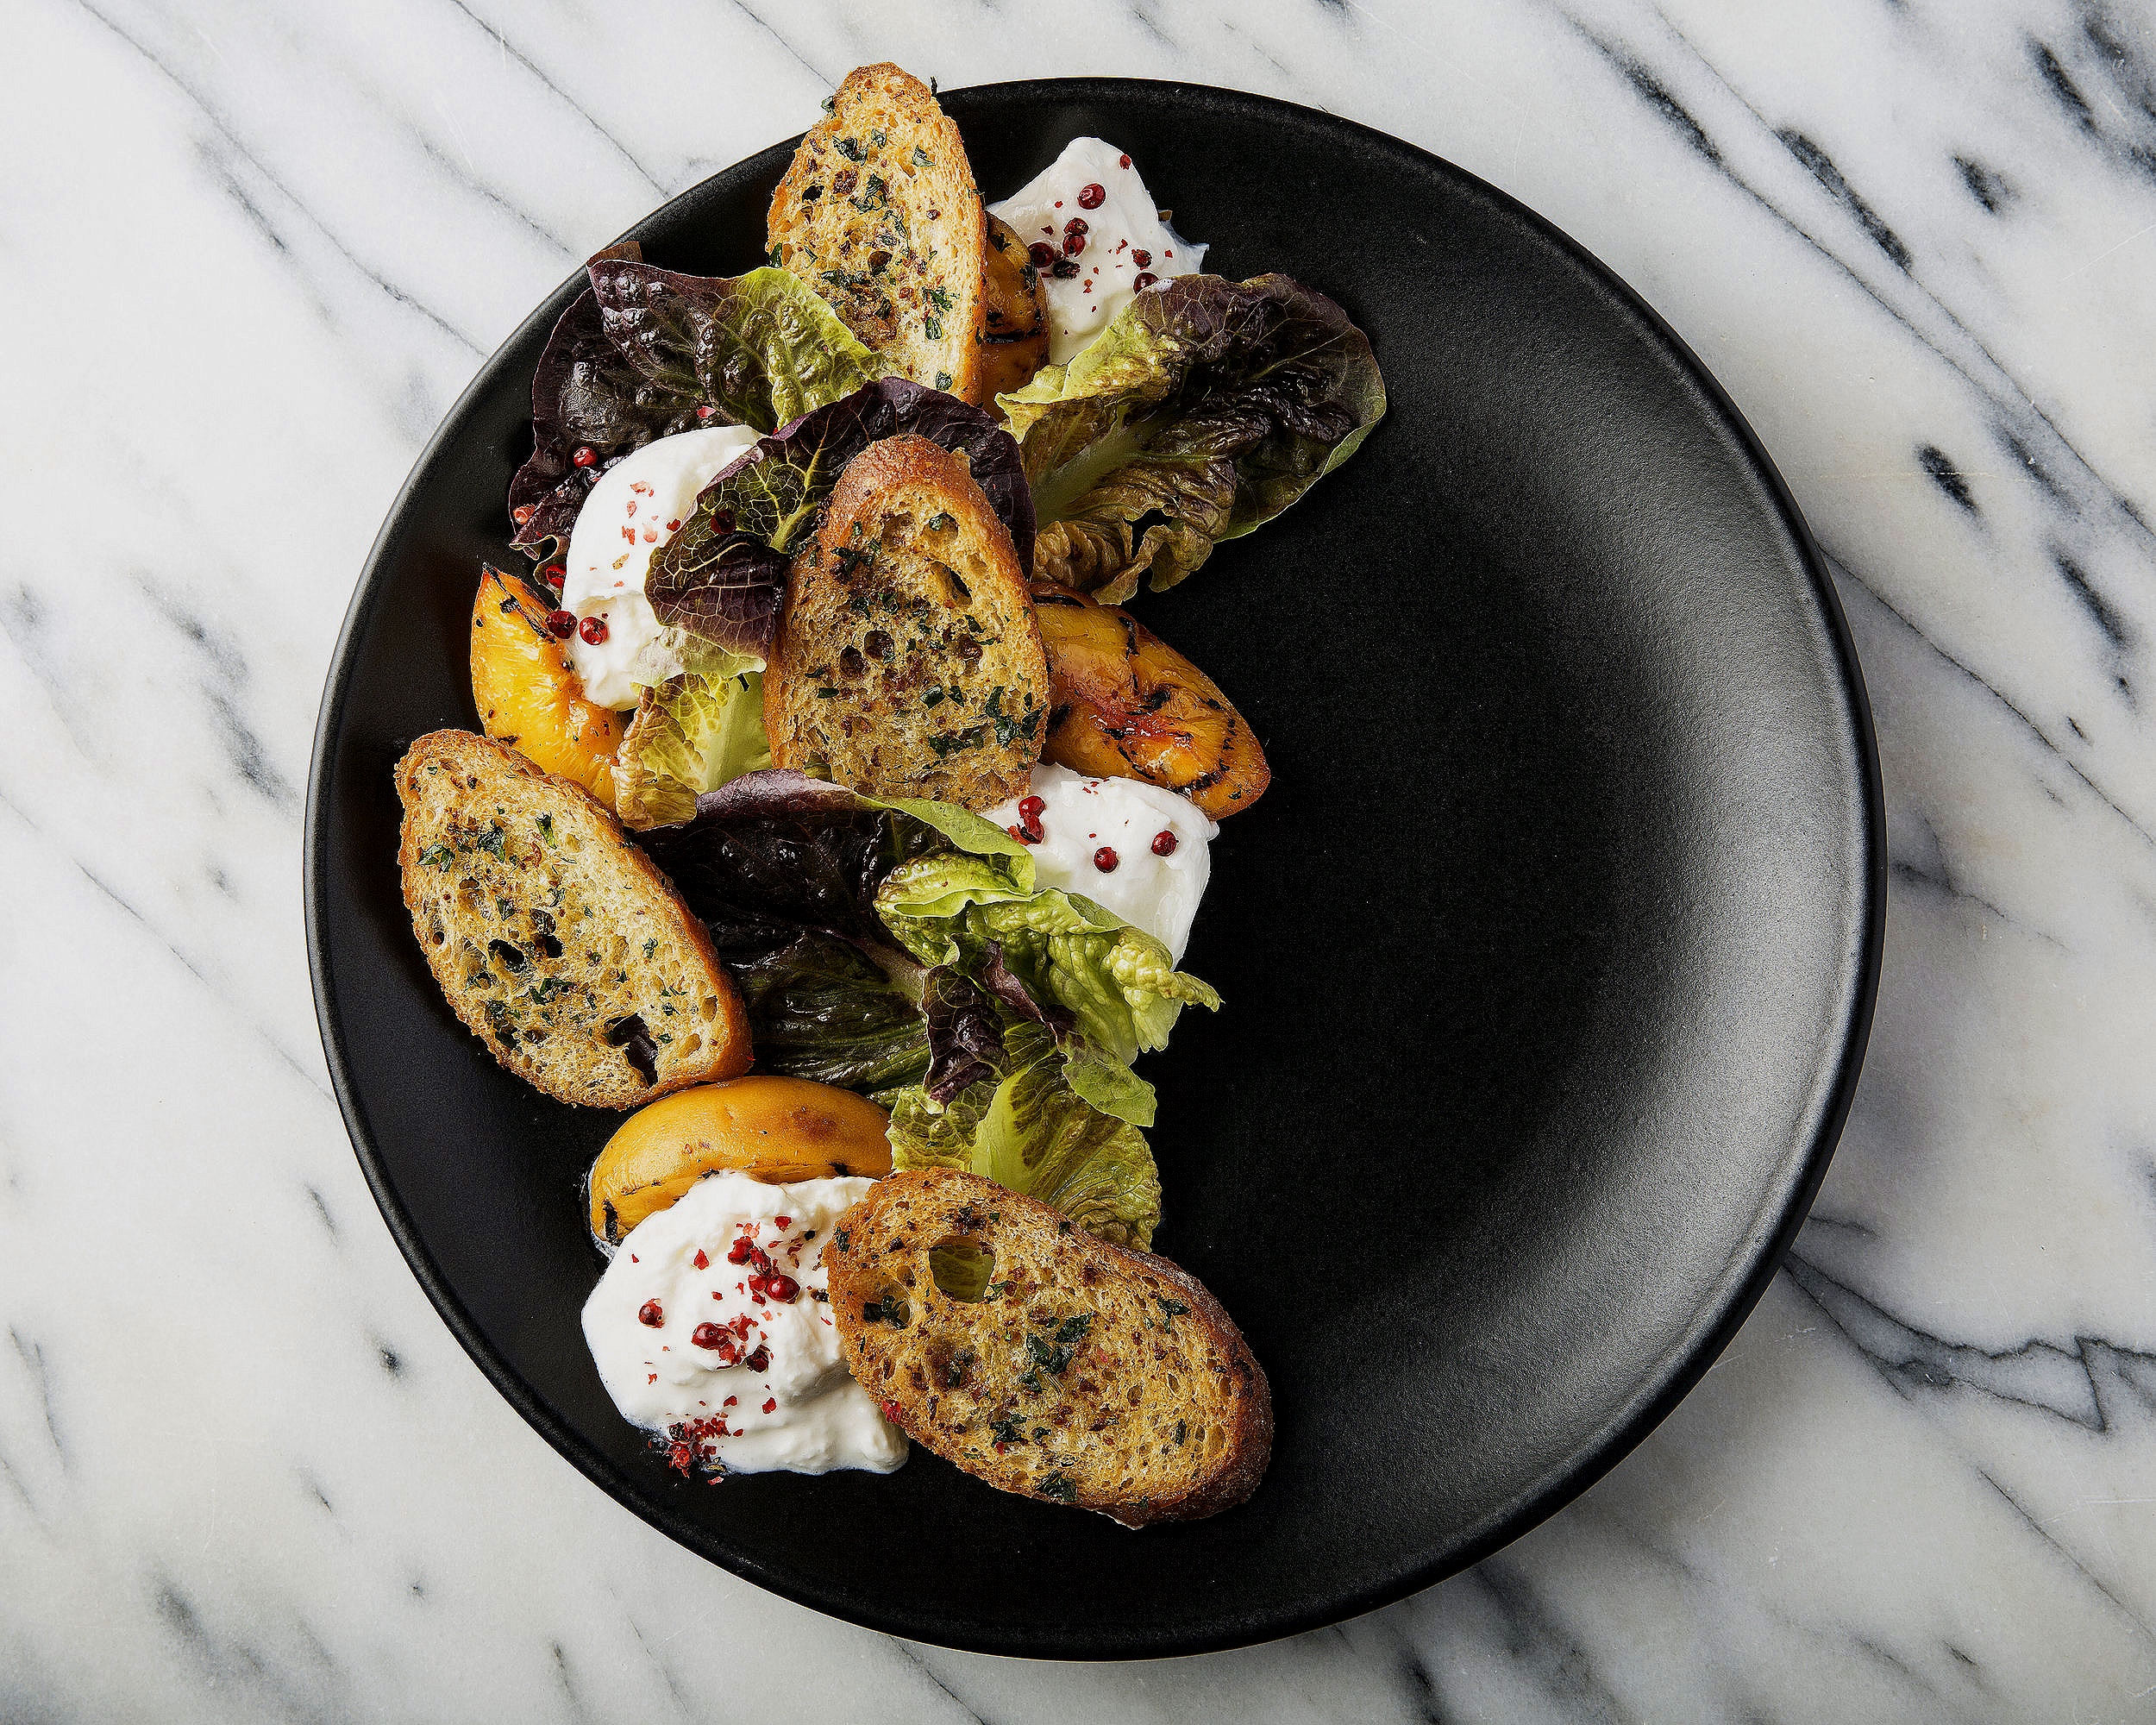 Red lettuce with grilled tree ripened peaches, burrata cheese, garlic herb crostini, crushed red pepper, and white balsamic vinaigrette